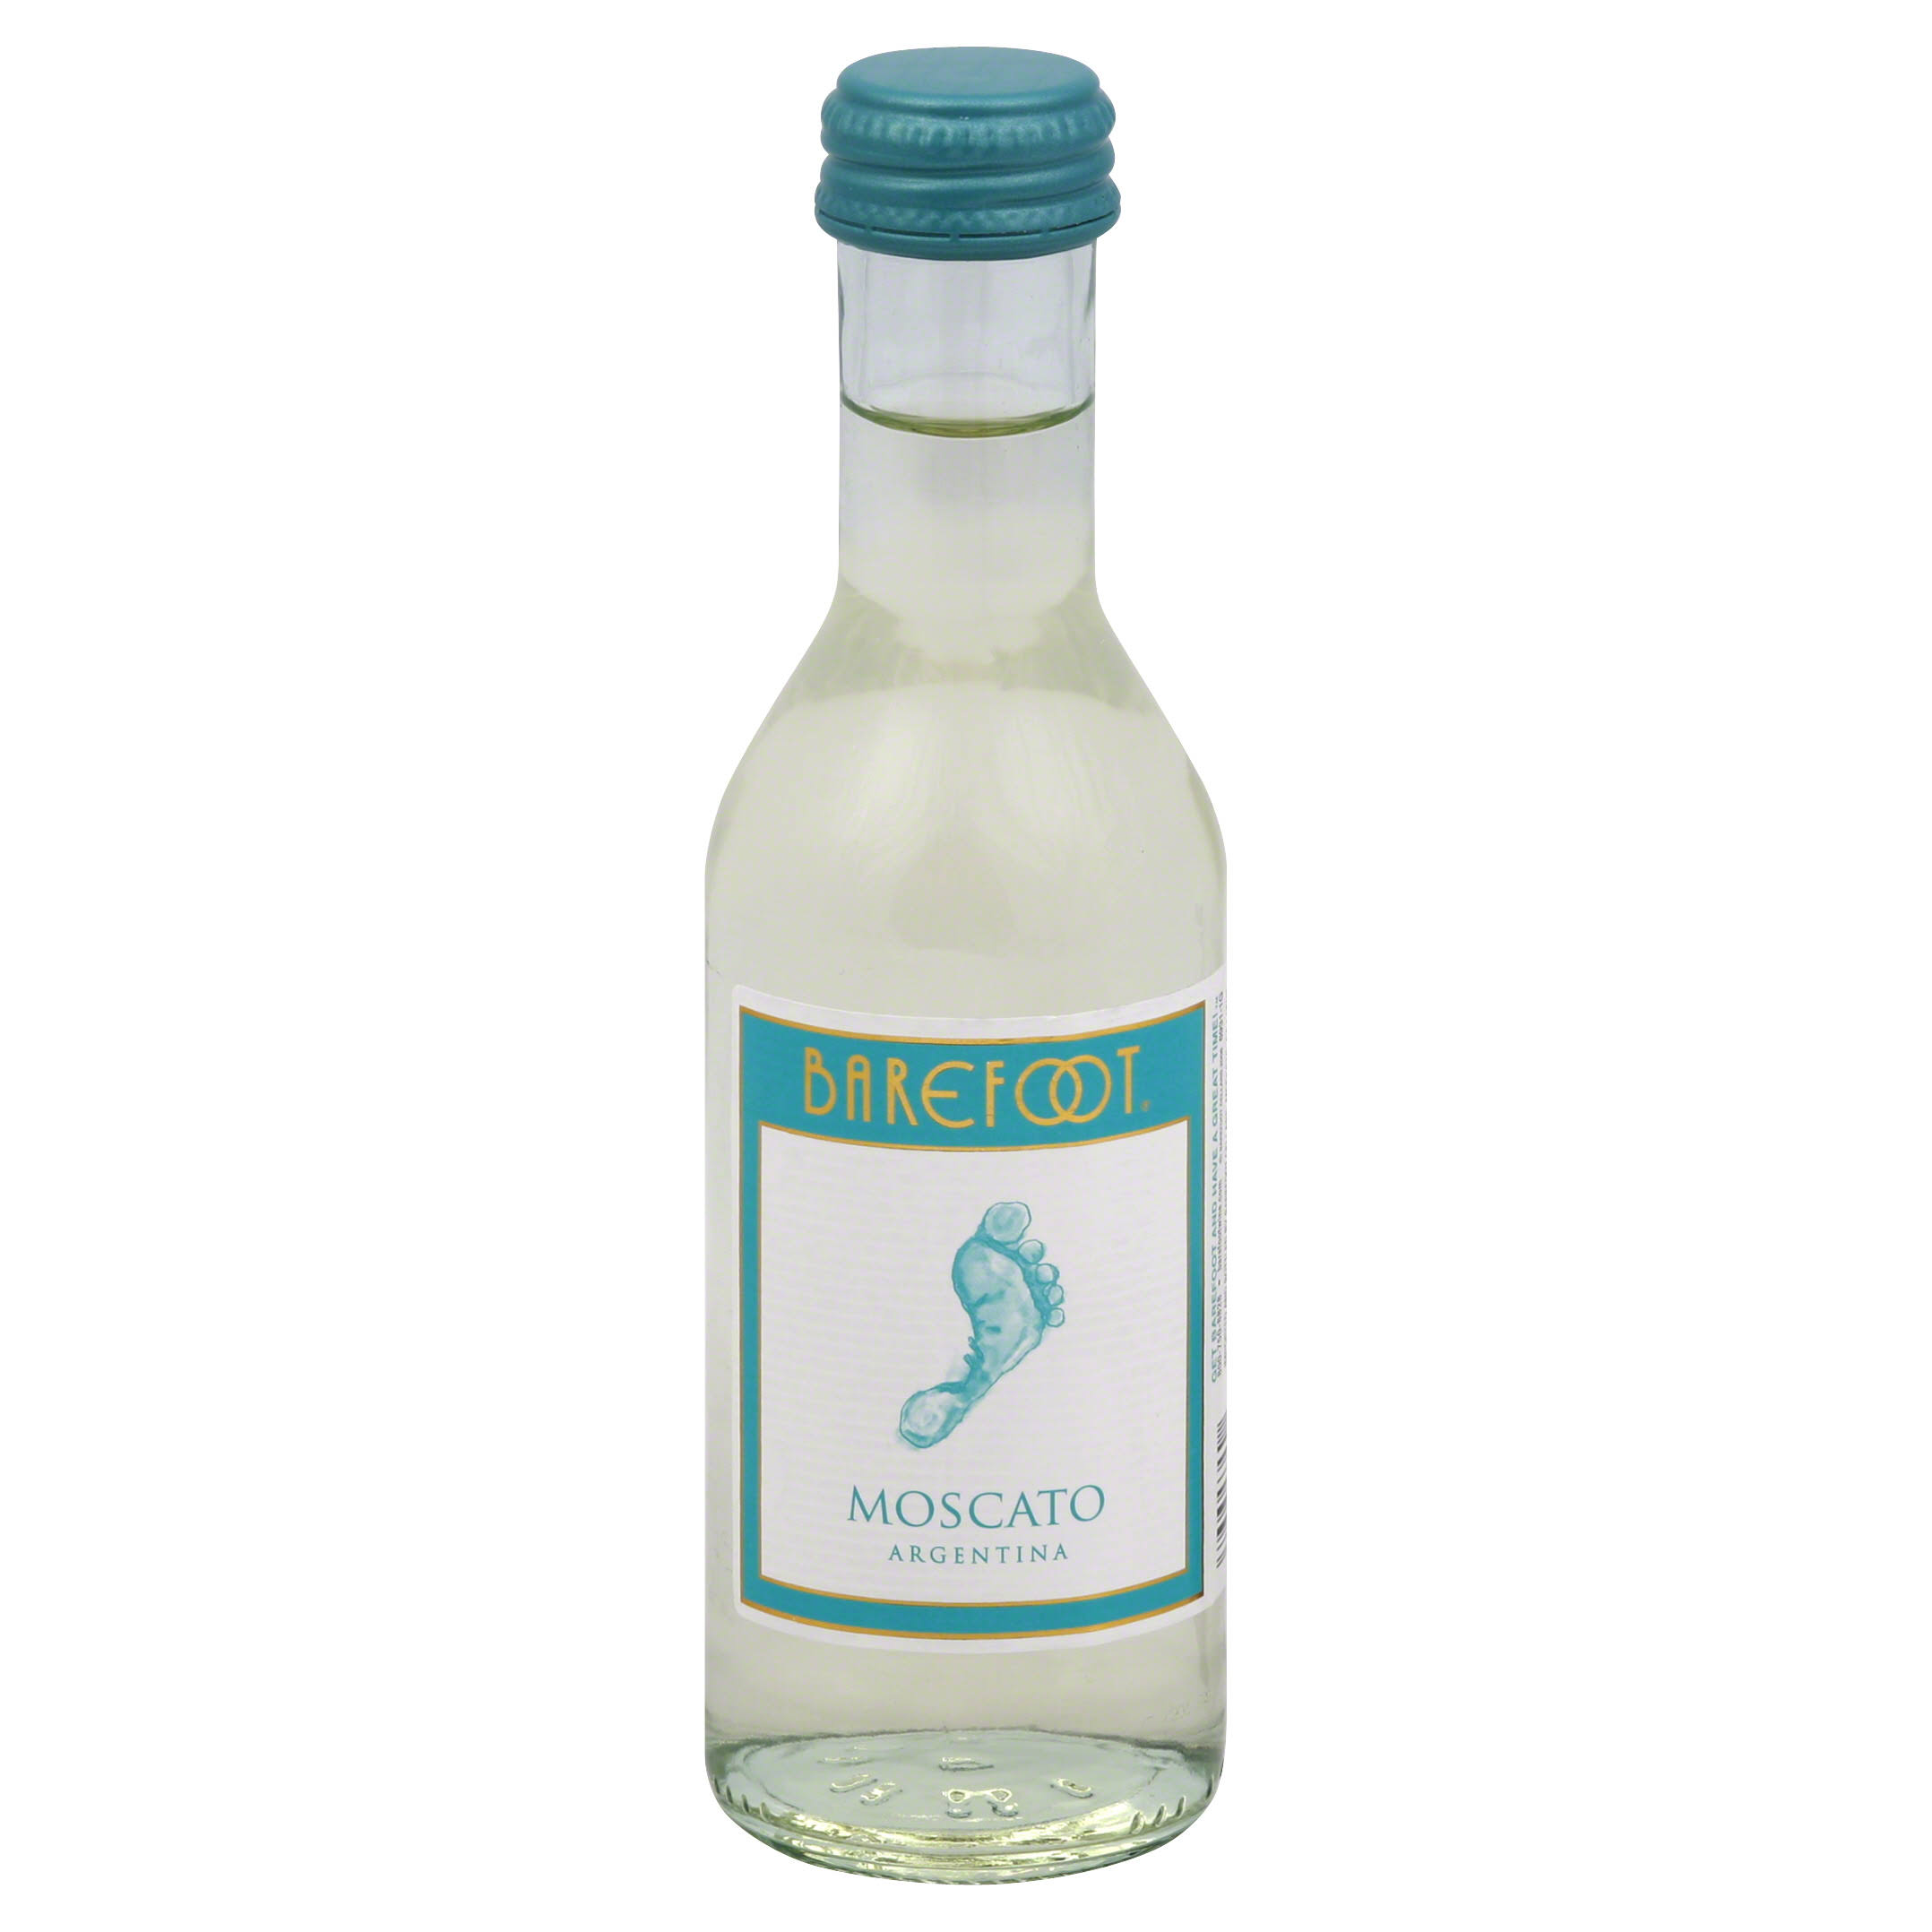 Barefoot Moscato, Argentina - 187 ml